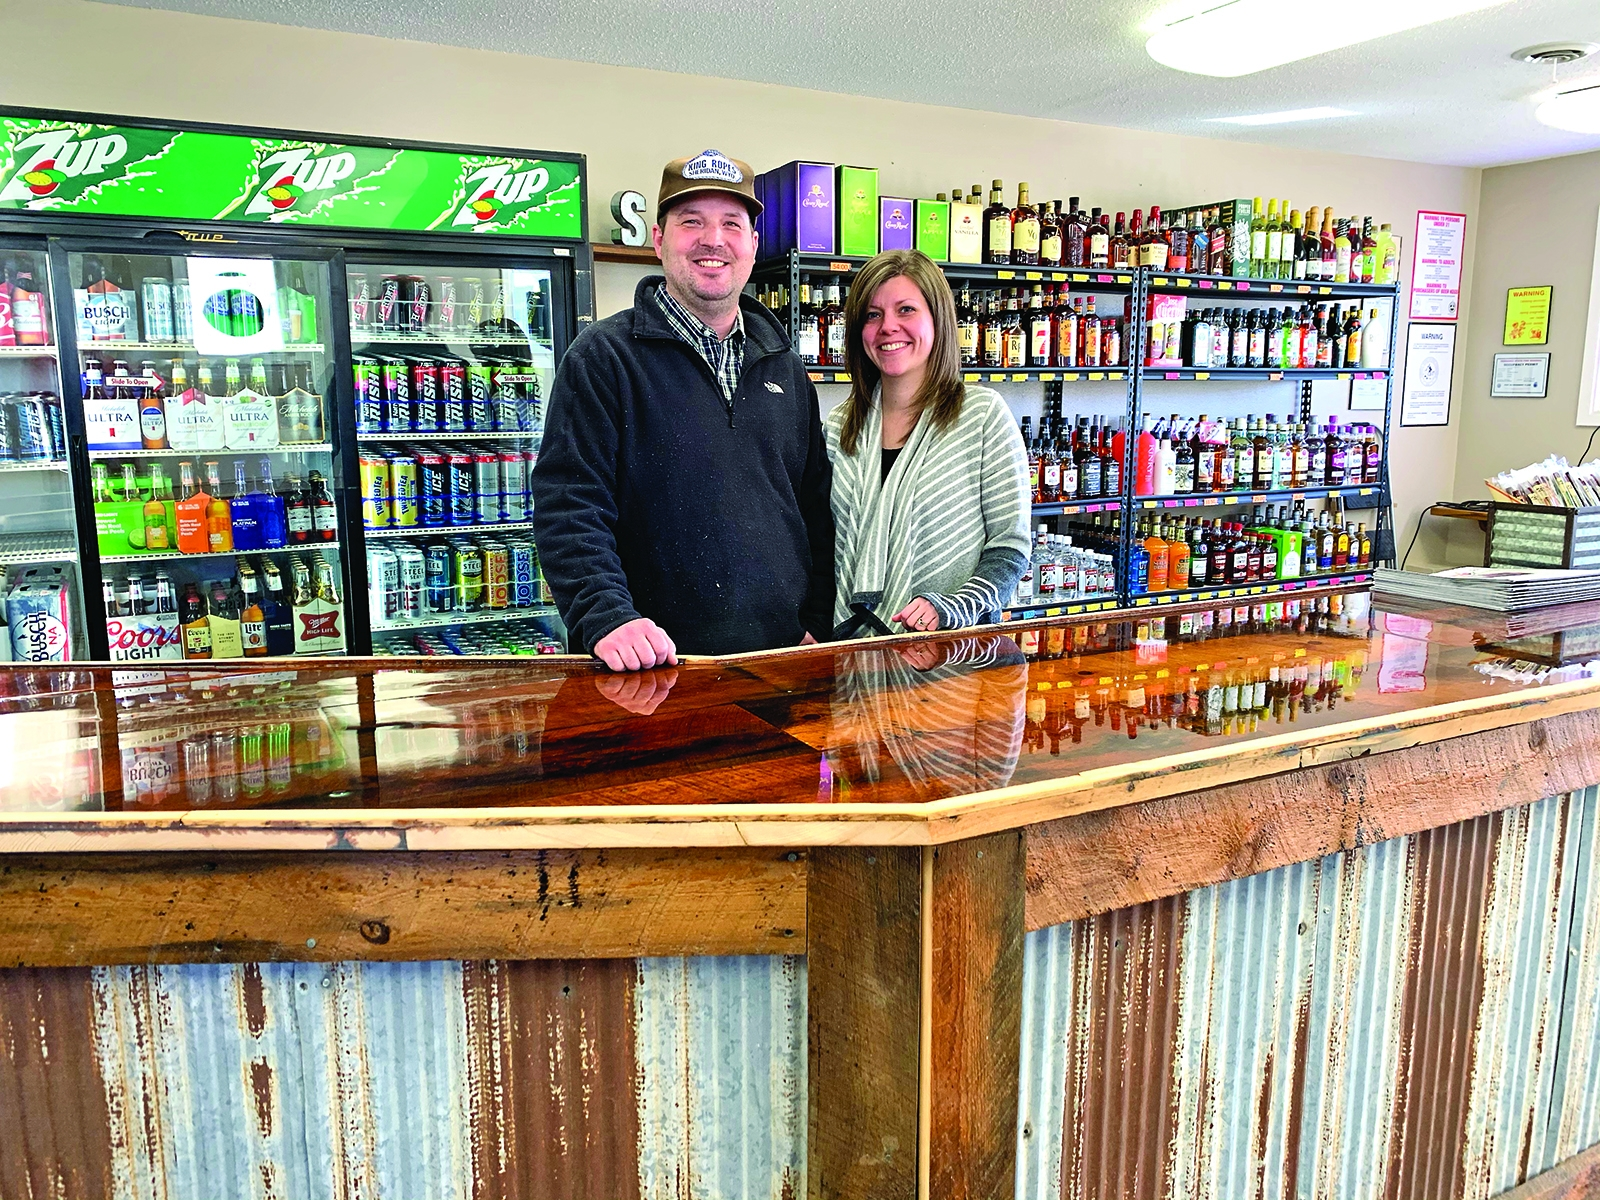 Jordan and Amanda Strain stand behind the counter of their new business, Sidetracks, in Gordon.